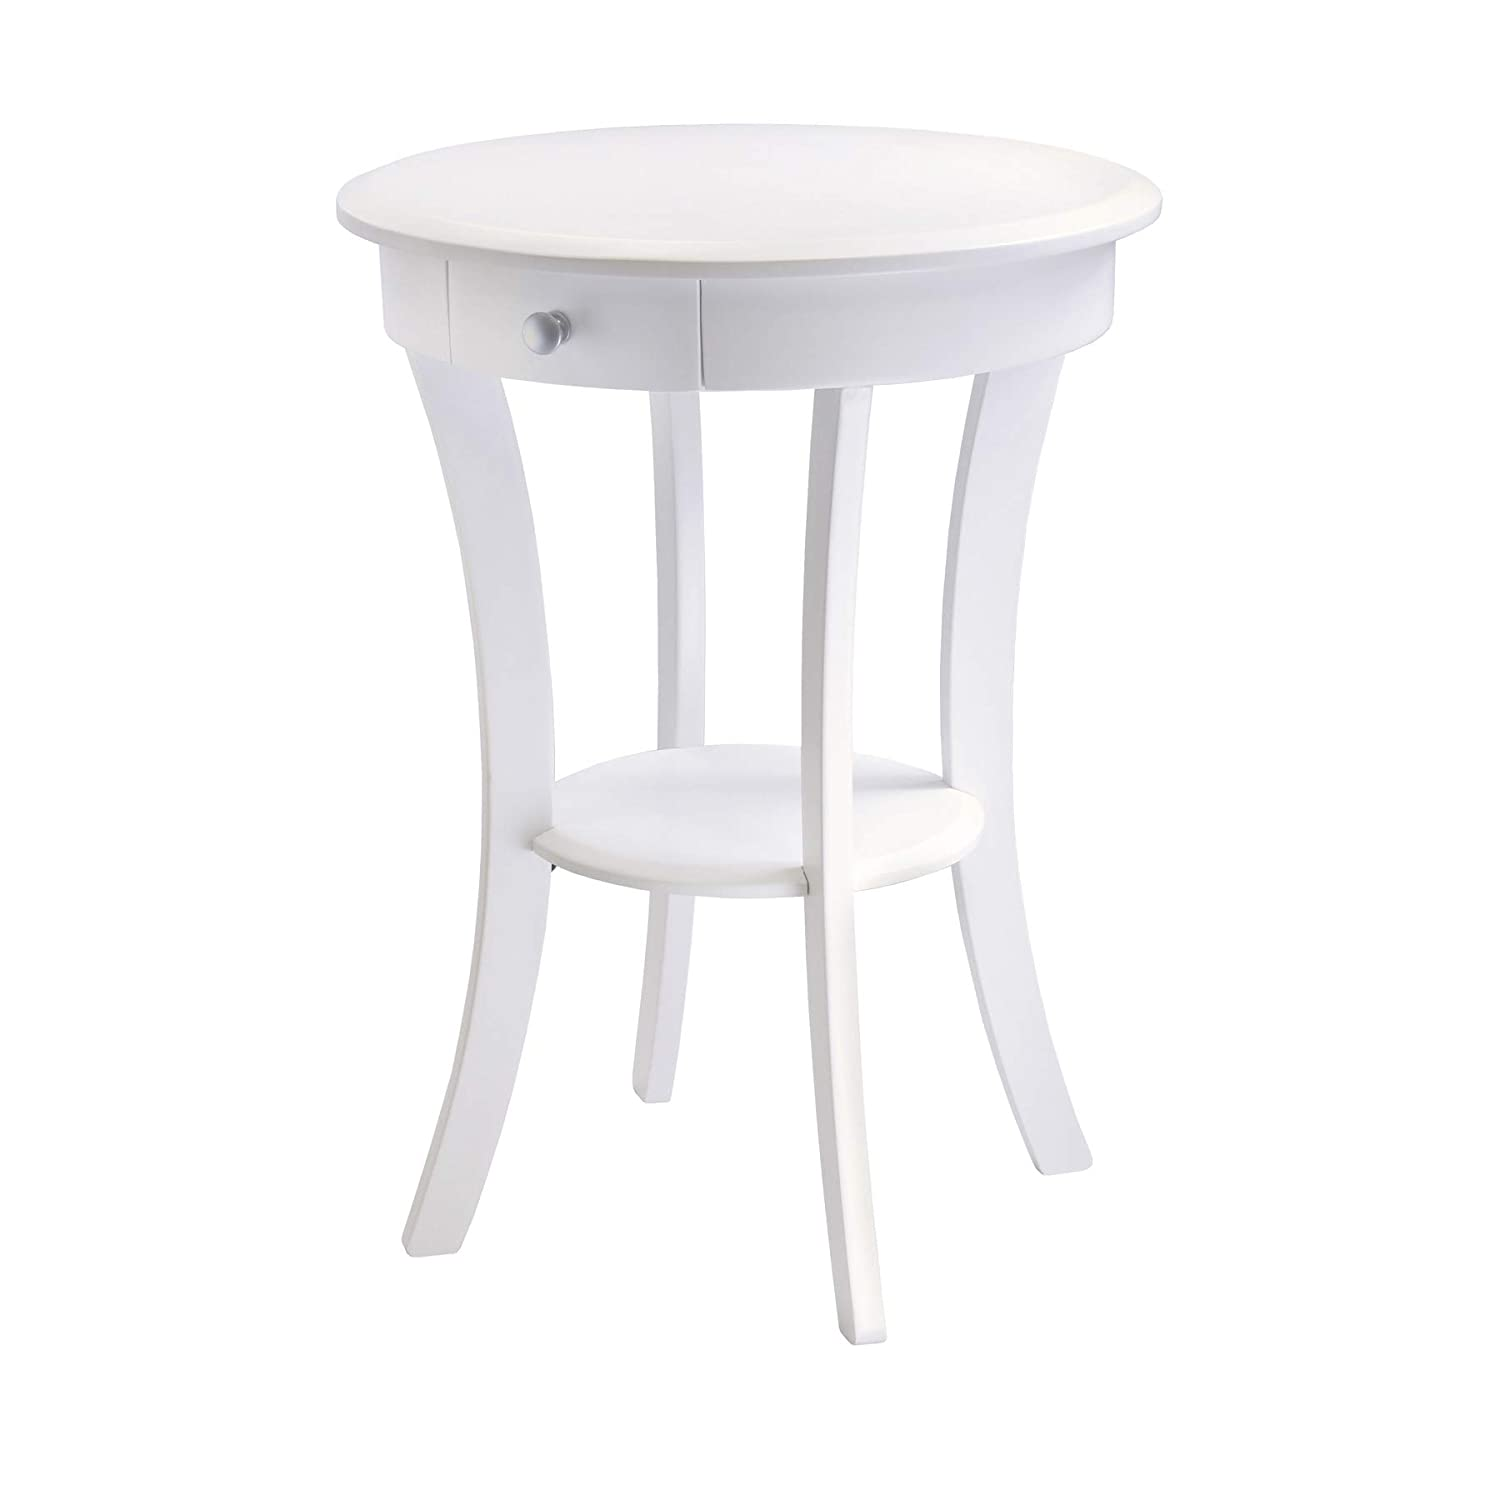 Winsome Wood 10727 Sasha Accent Table, White